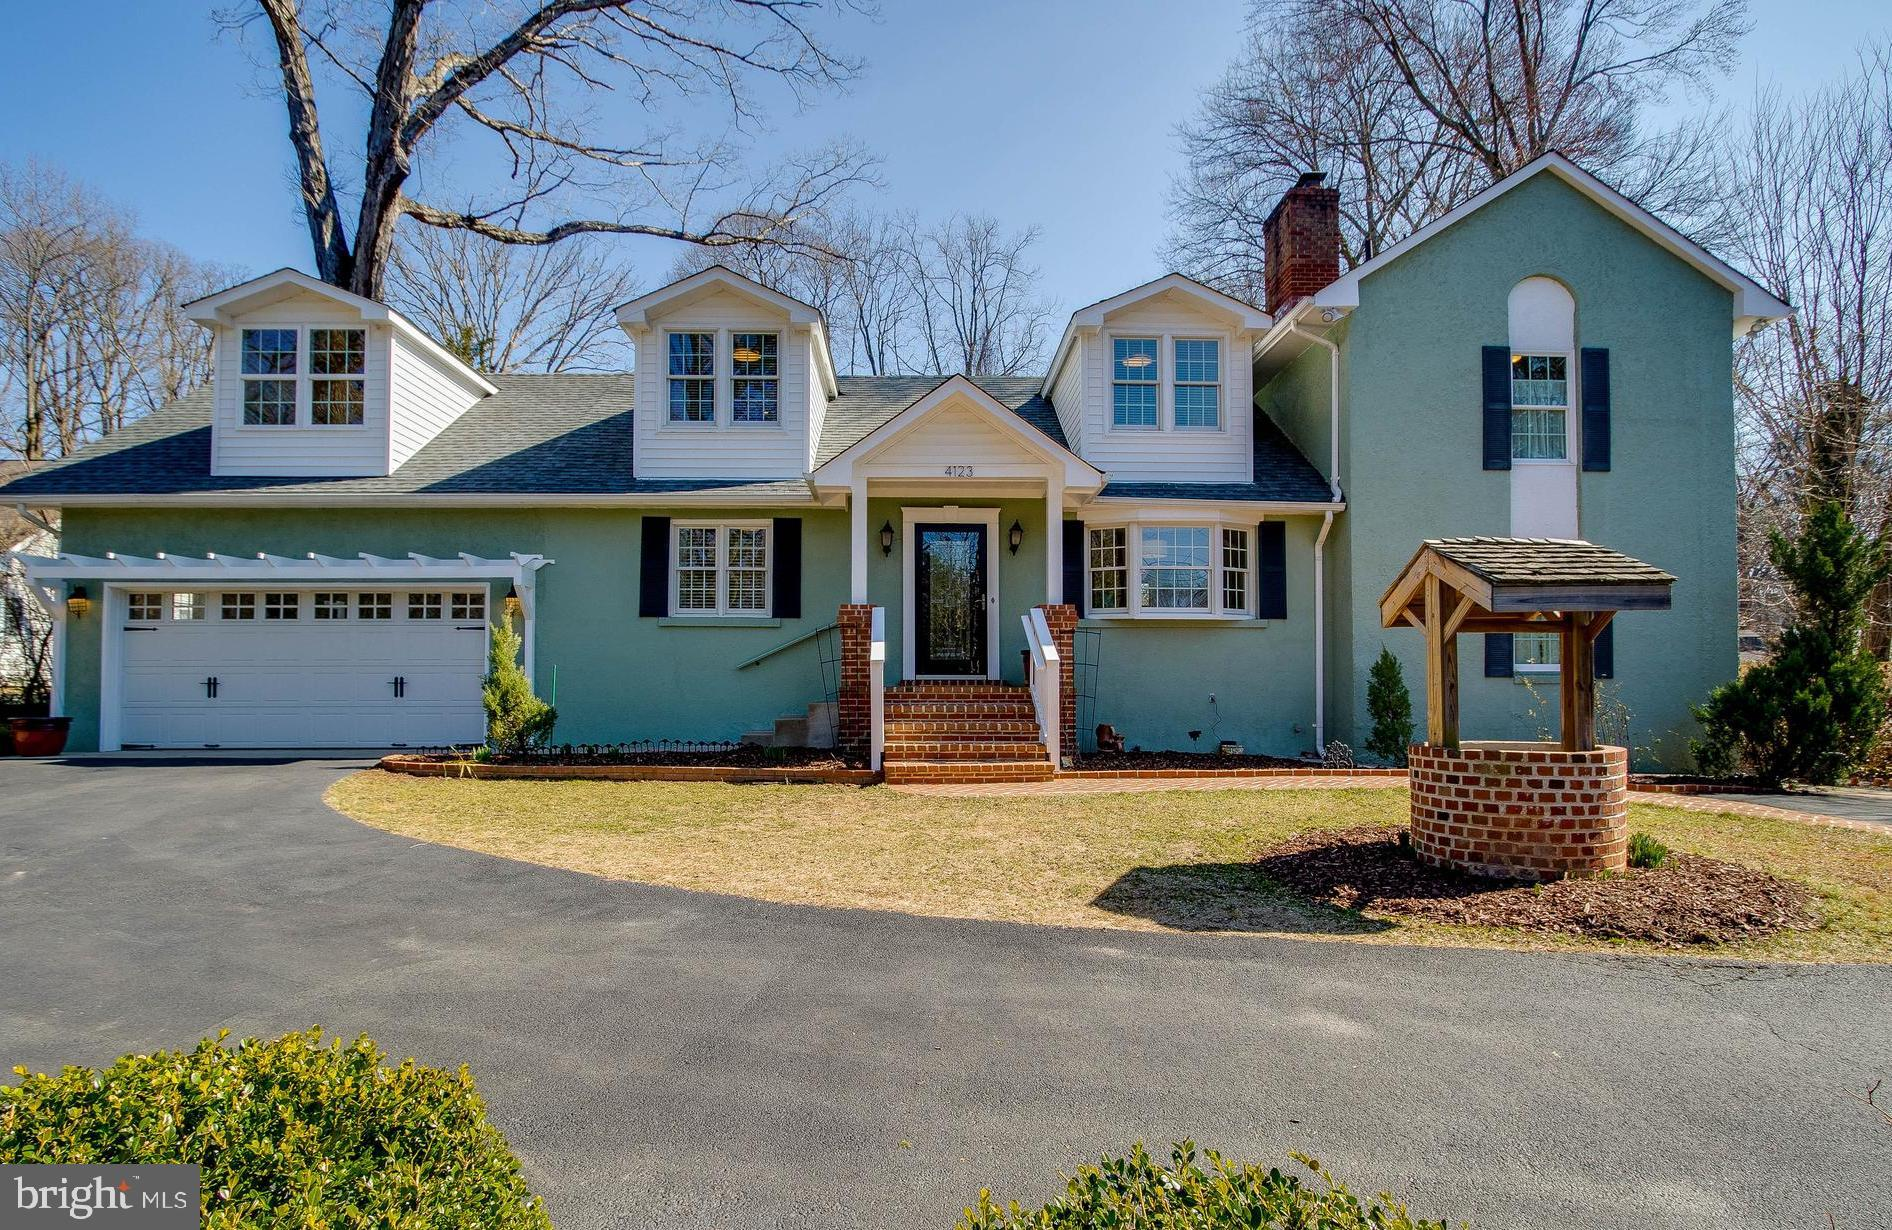 4123 BURKE STATION ROAD, FAIRFAX, VA 22032